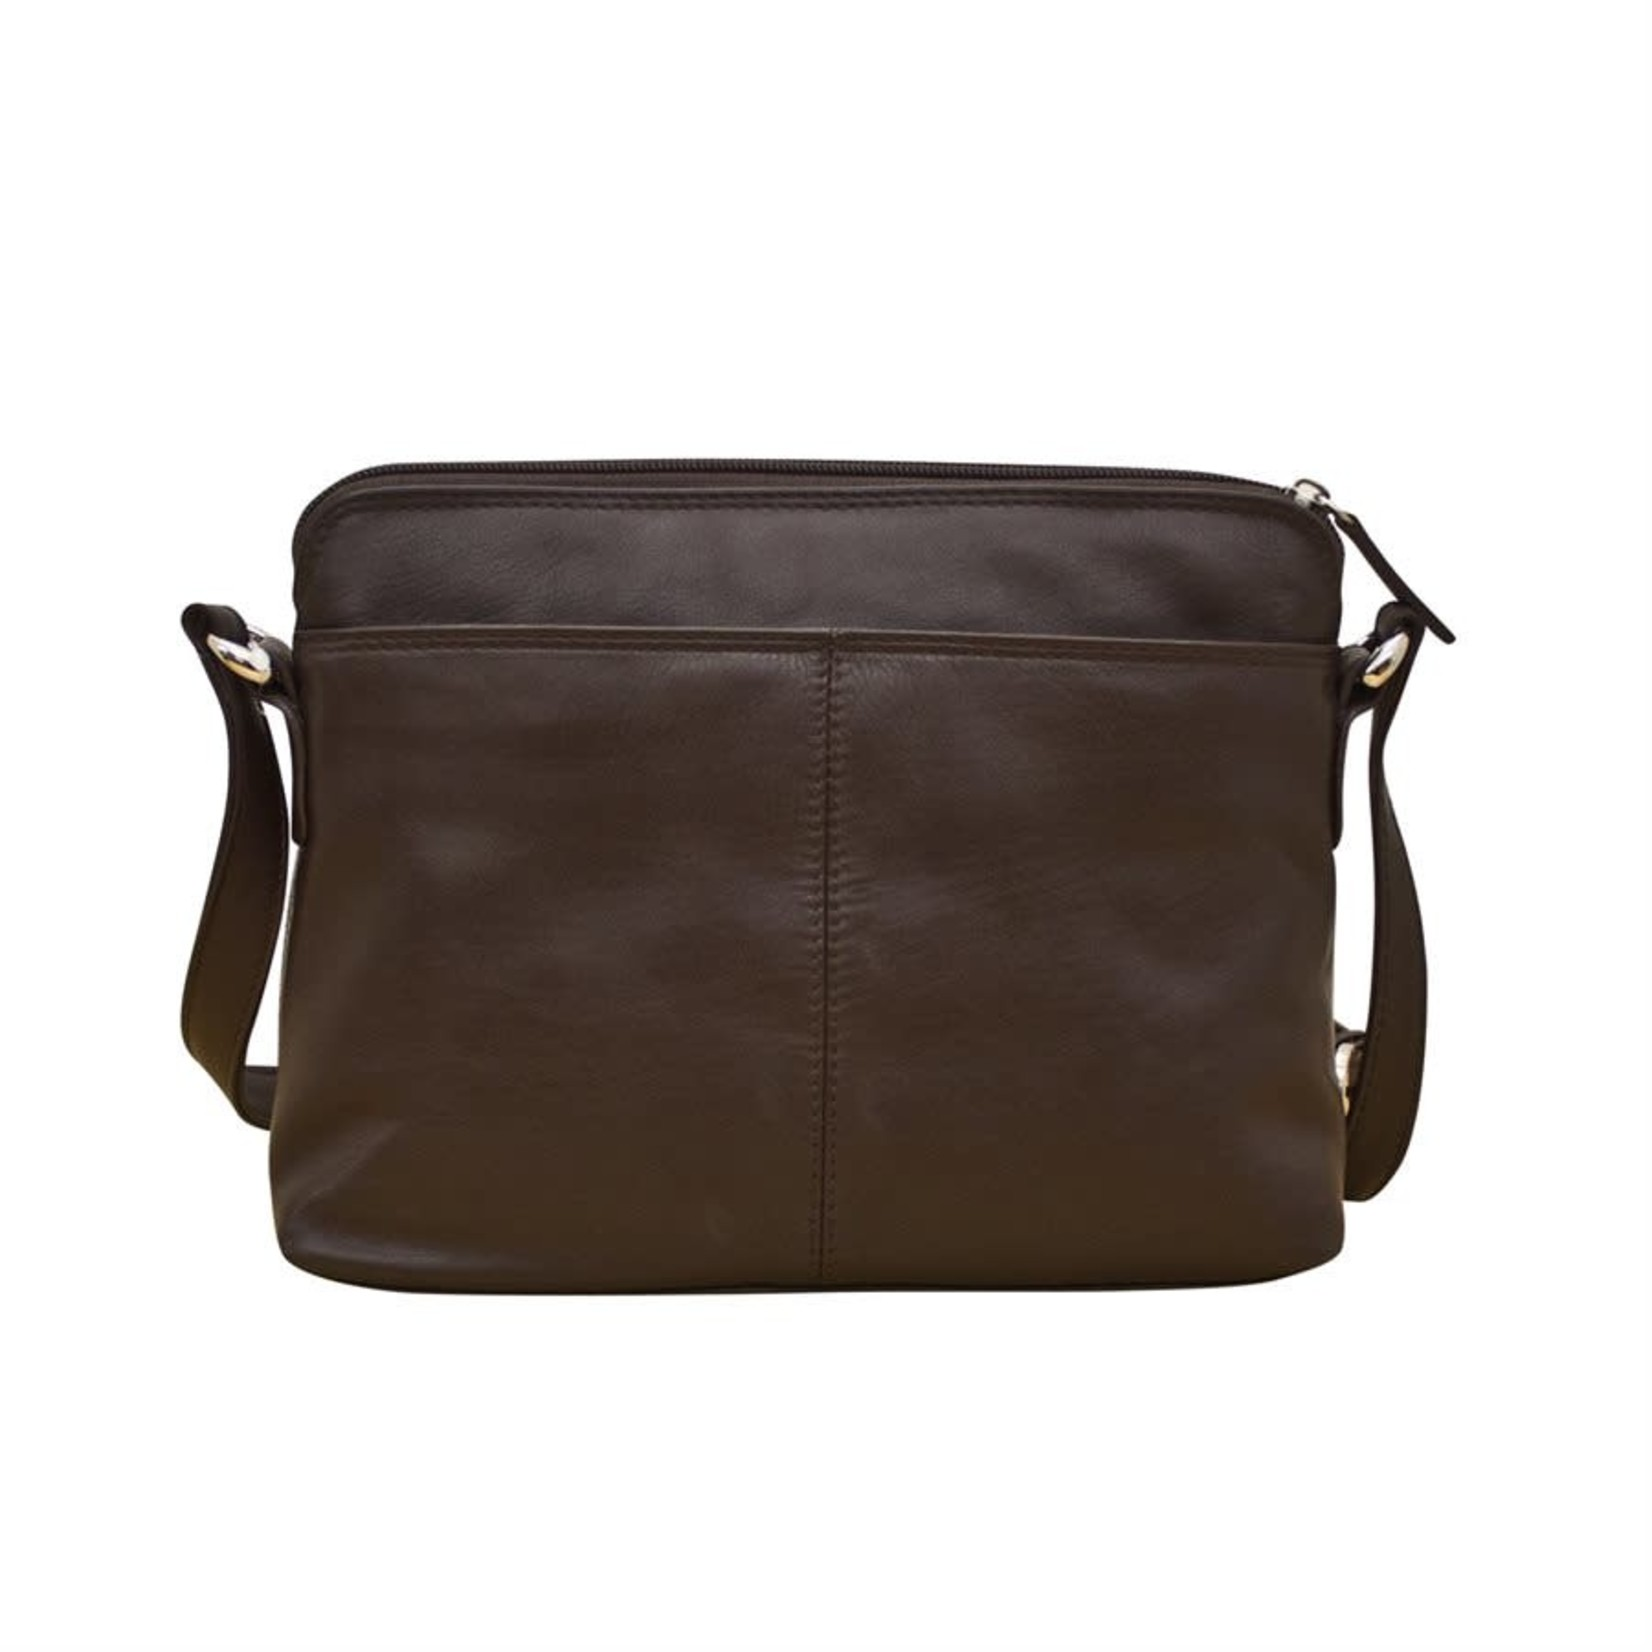 Leather Handbags and Accessories 6333 Brown - Organizer Bag